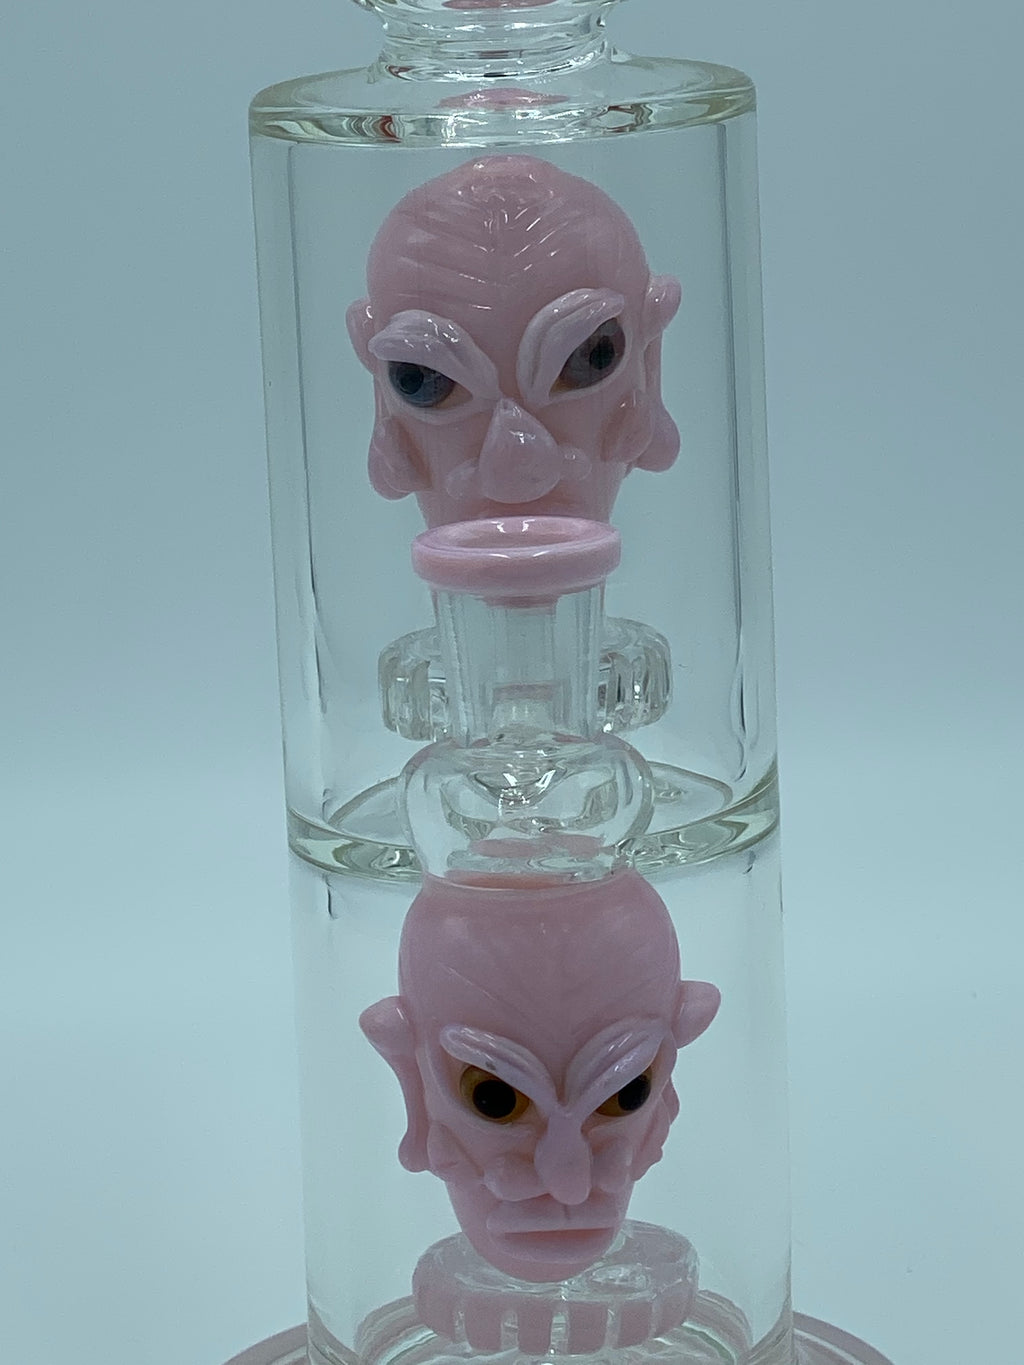 CHEECH GLASS PINK GOBLIN PERCOLATOR - Smoke Country - Land of the artistic glass blown bongs